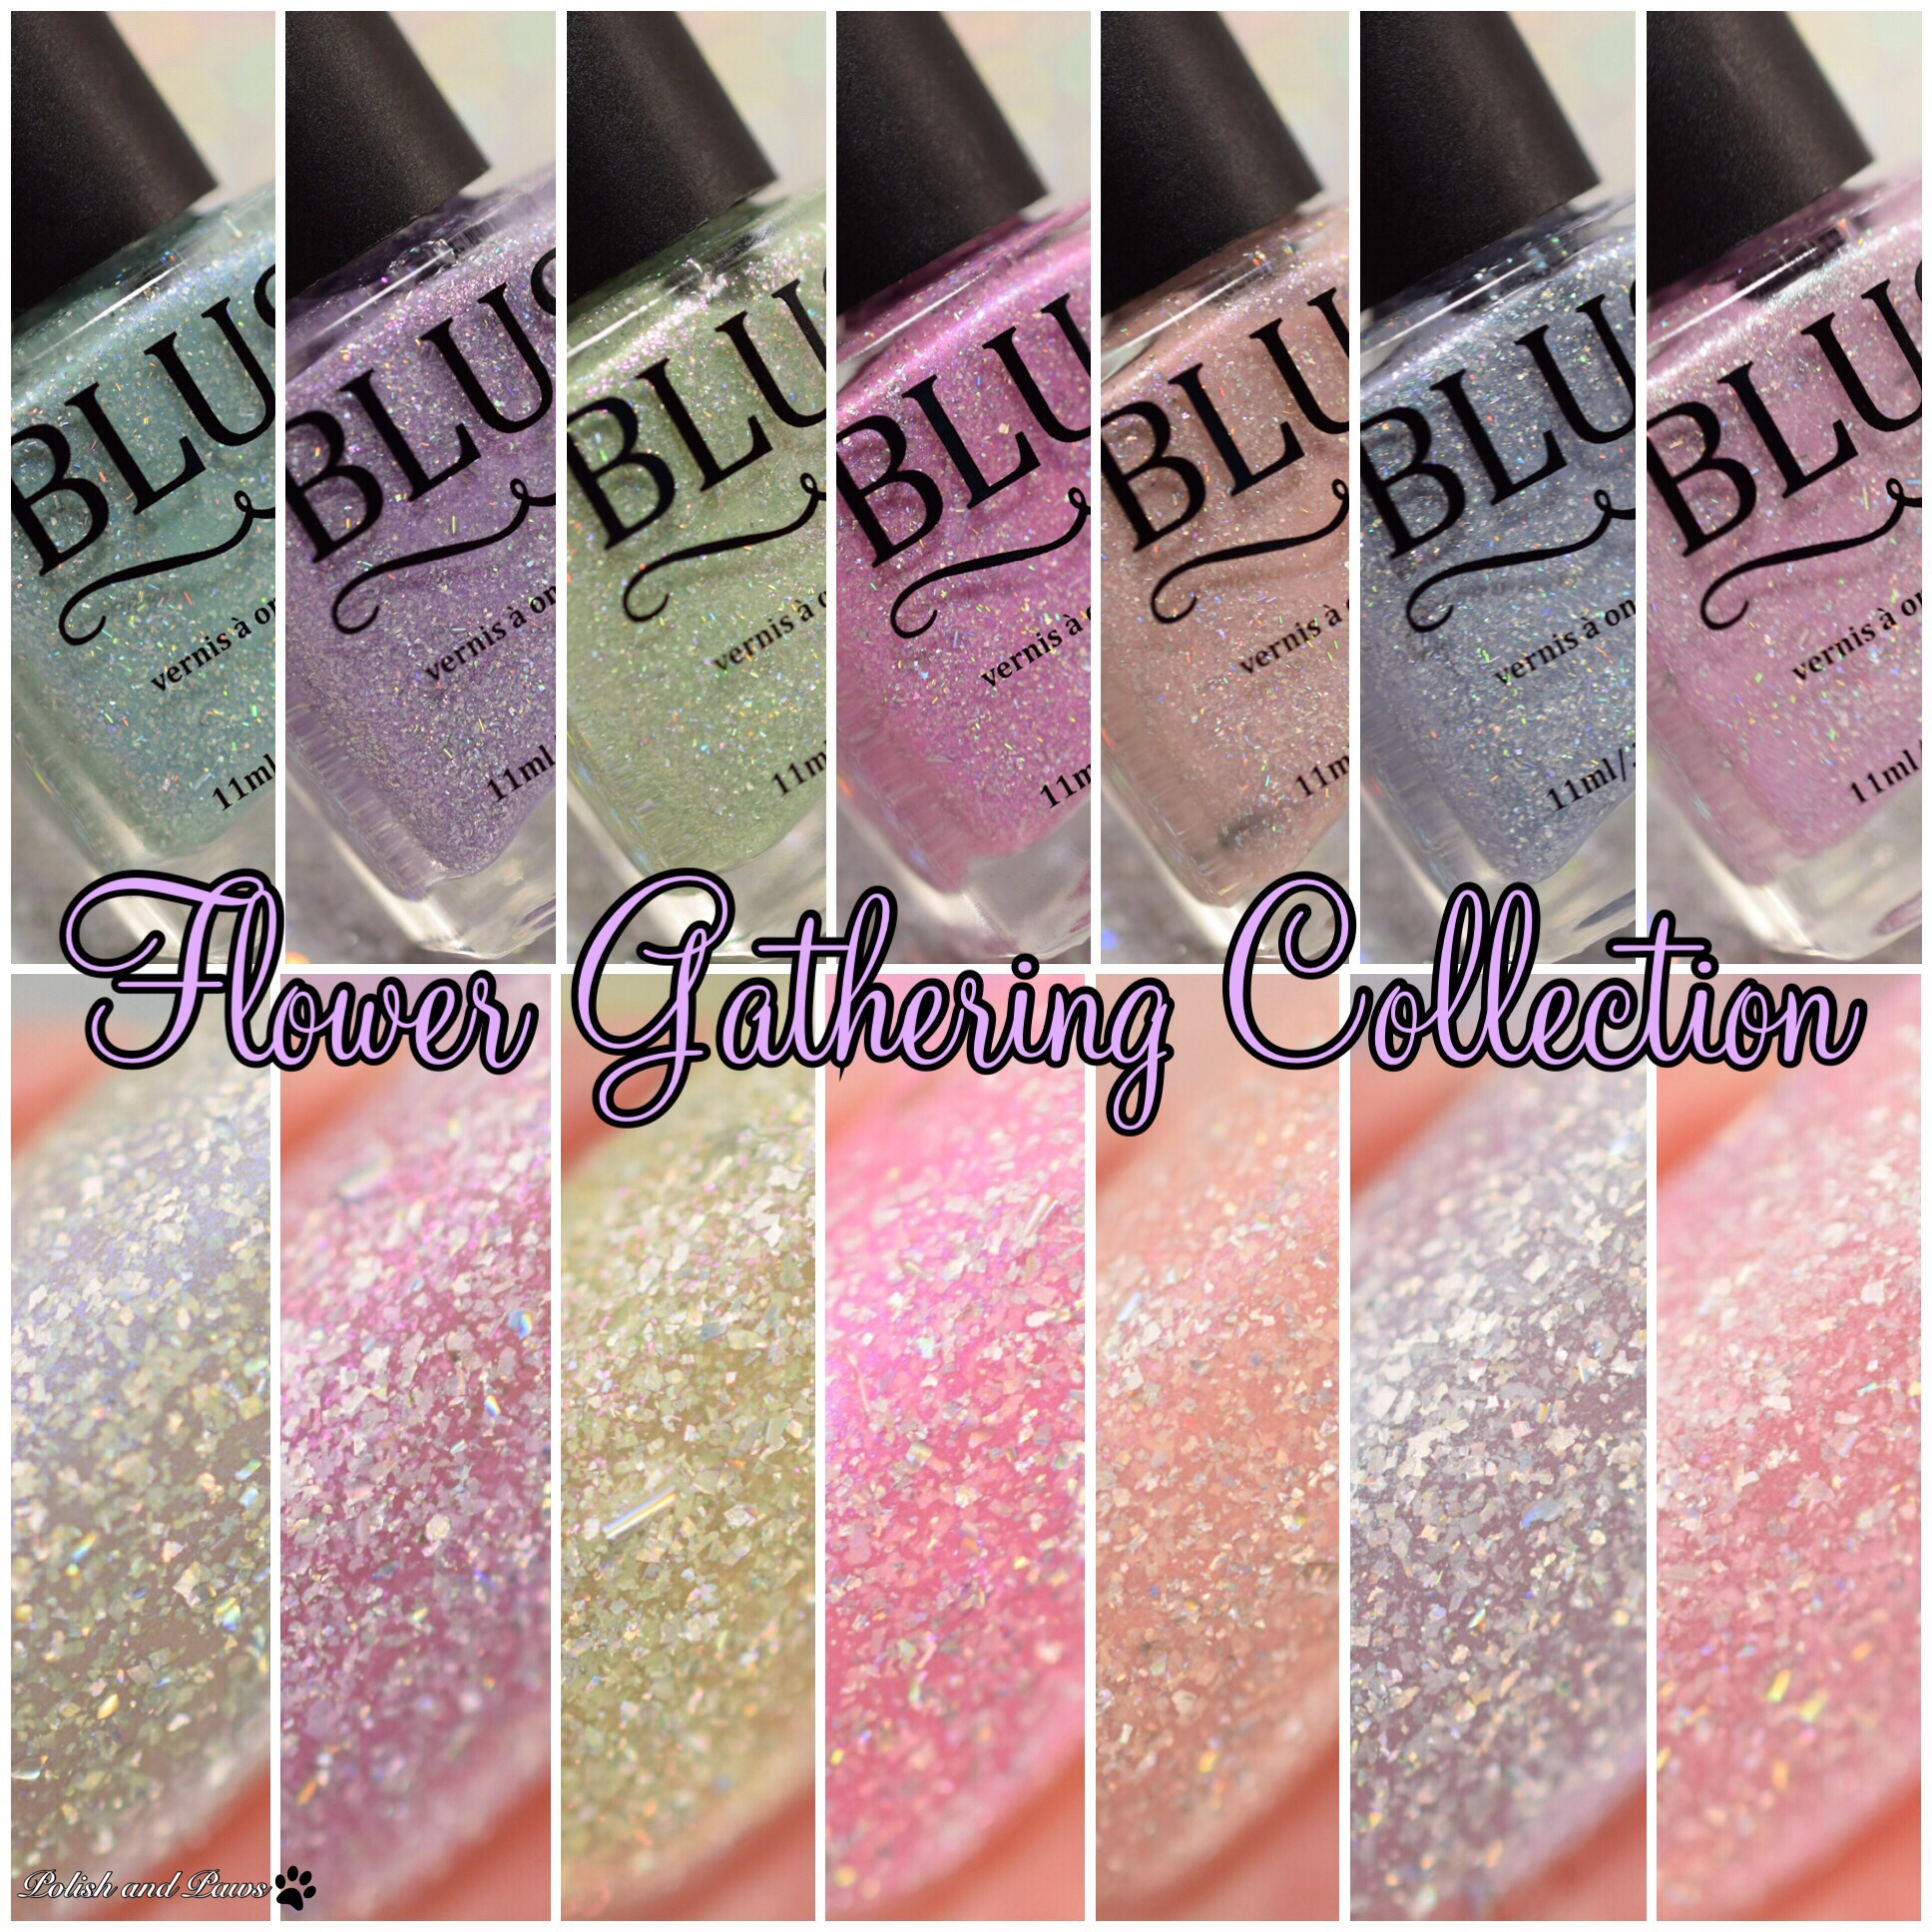 Blush Lacquers Flower Gathering Collection